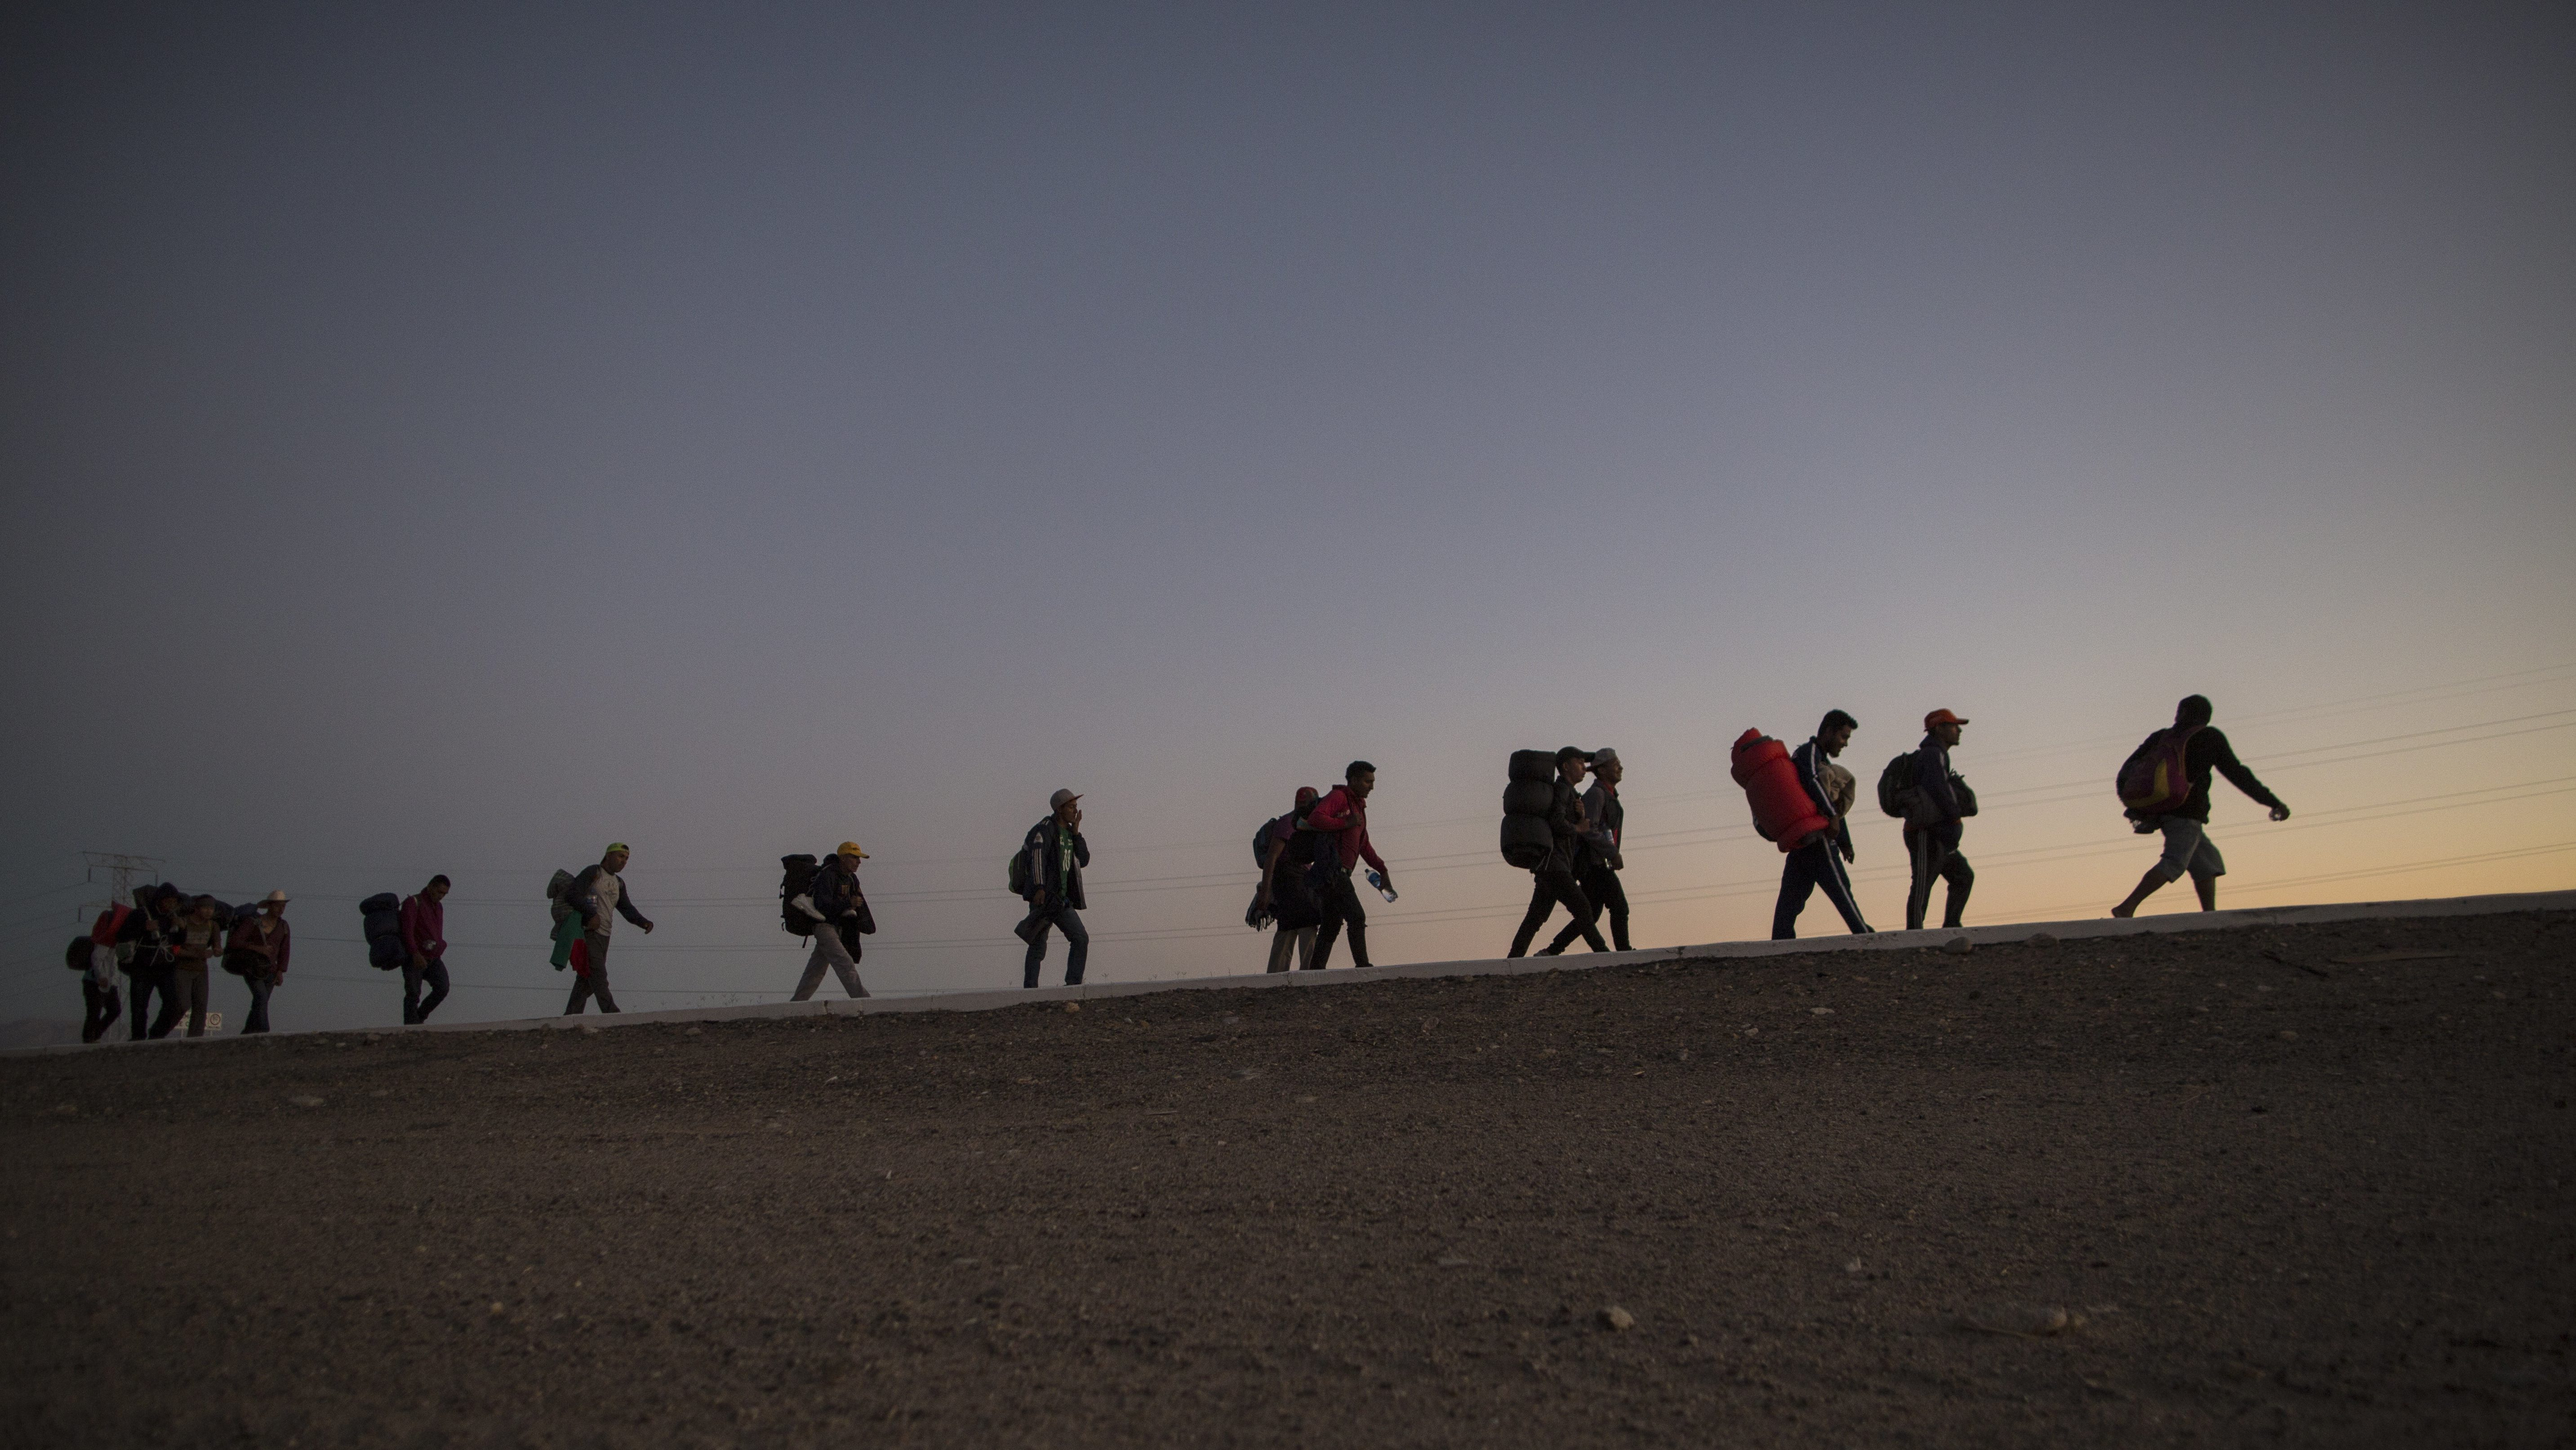 People who fled Central America walking toward the US border.